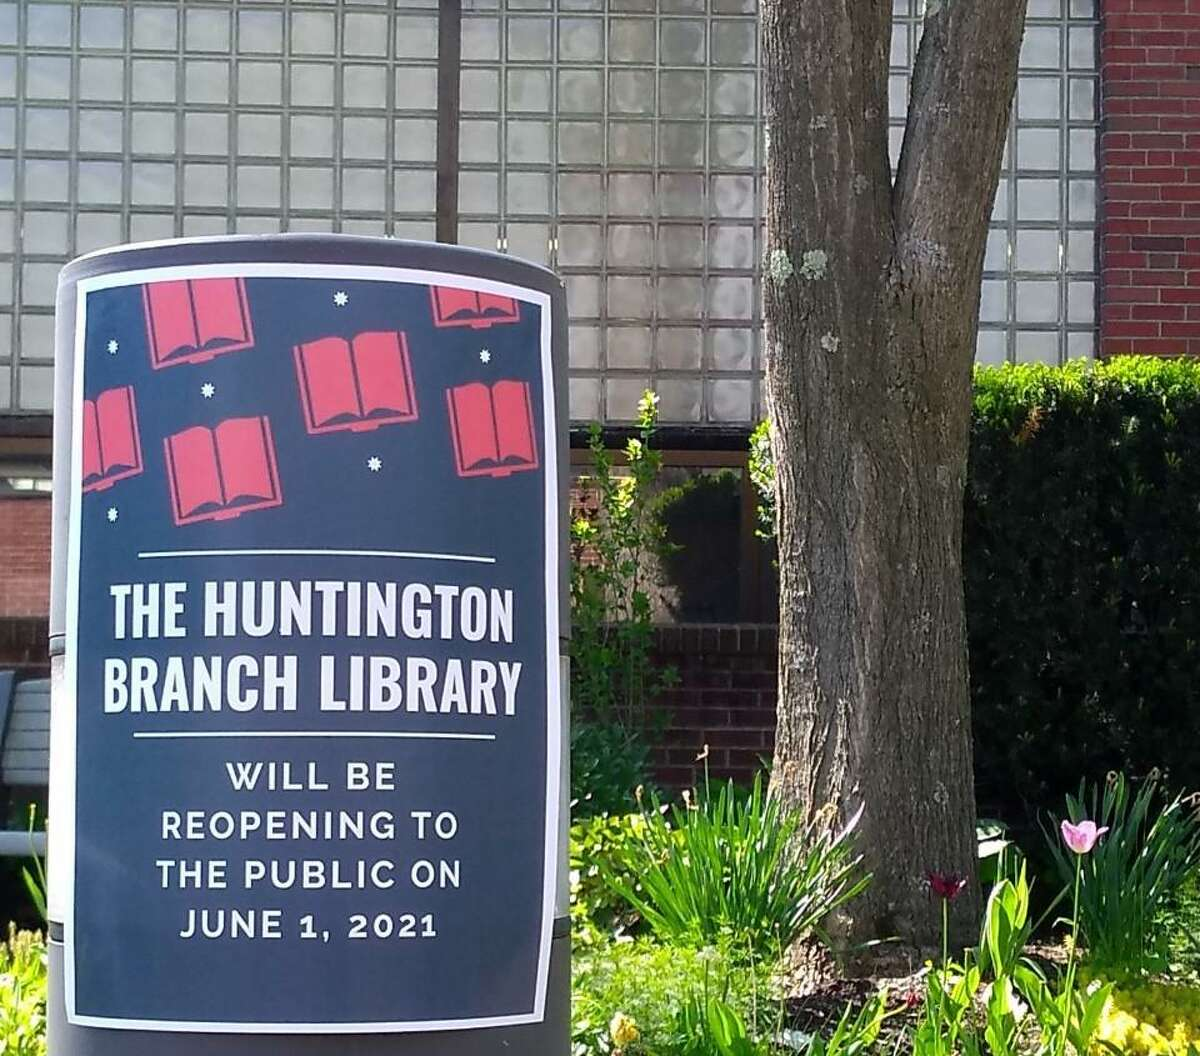 After more than a year of being shut down, Huntington Branch Library reopened on June 1, 2021.